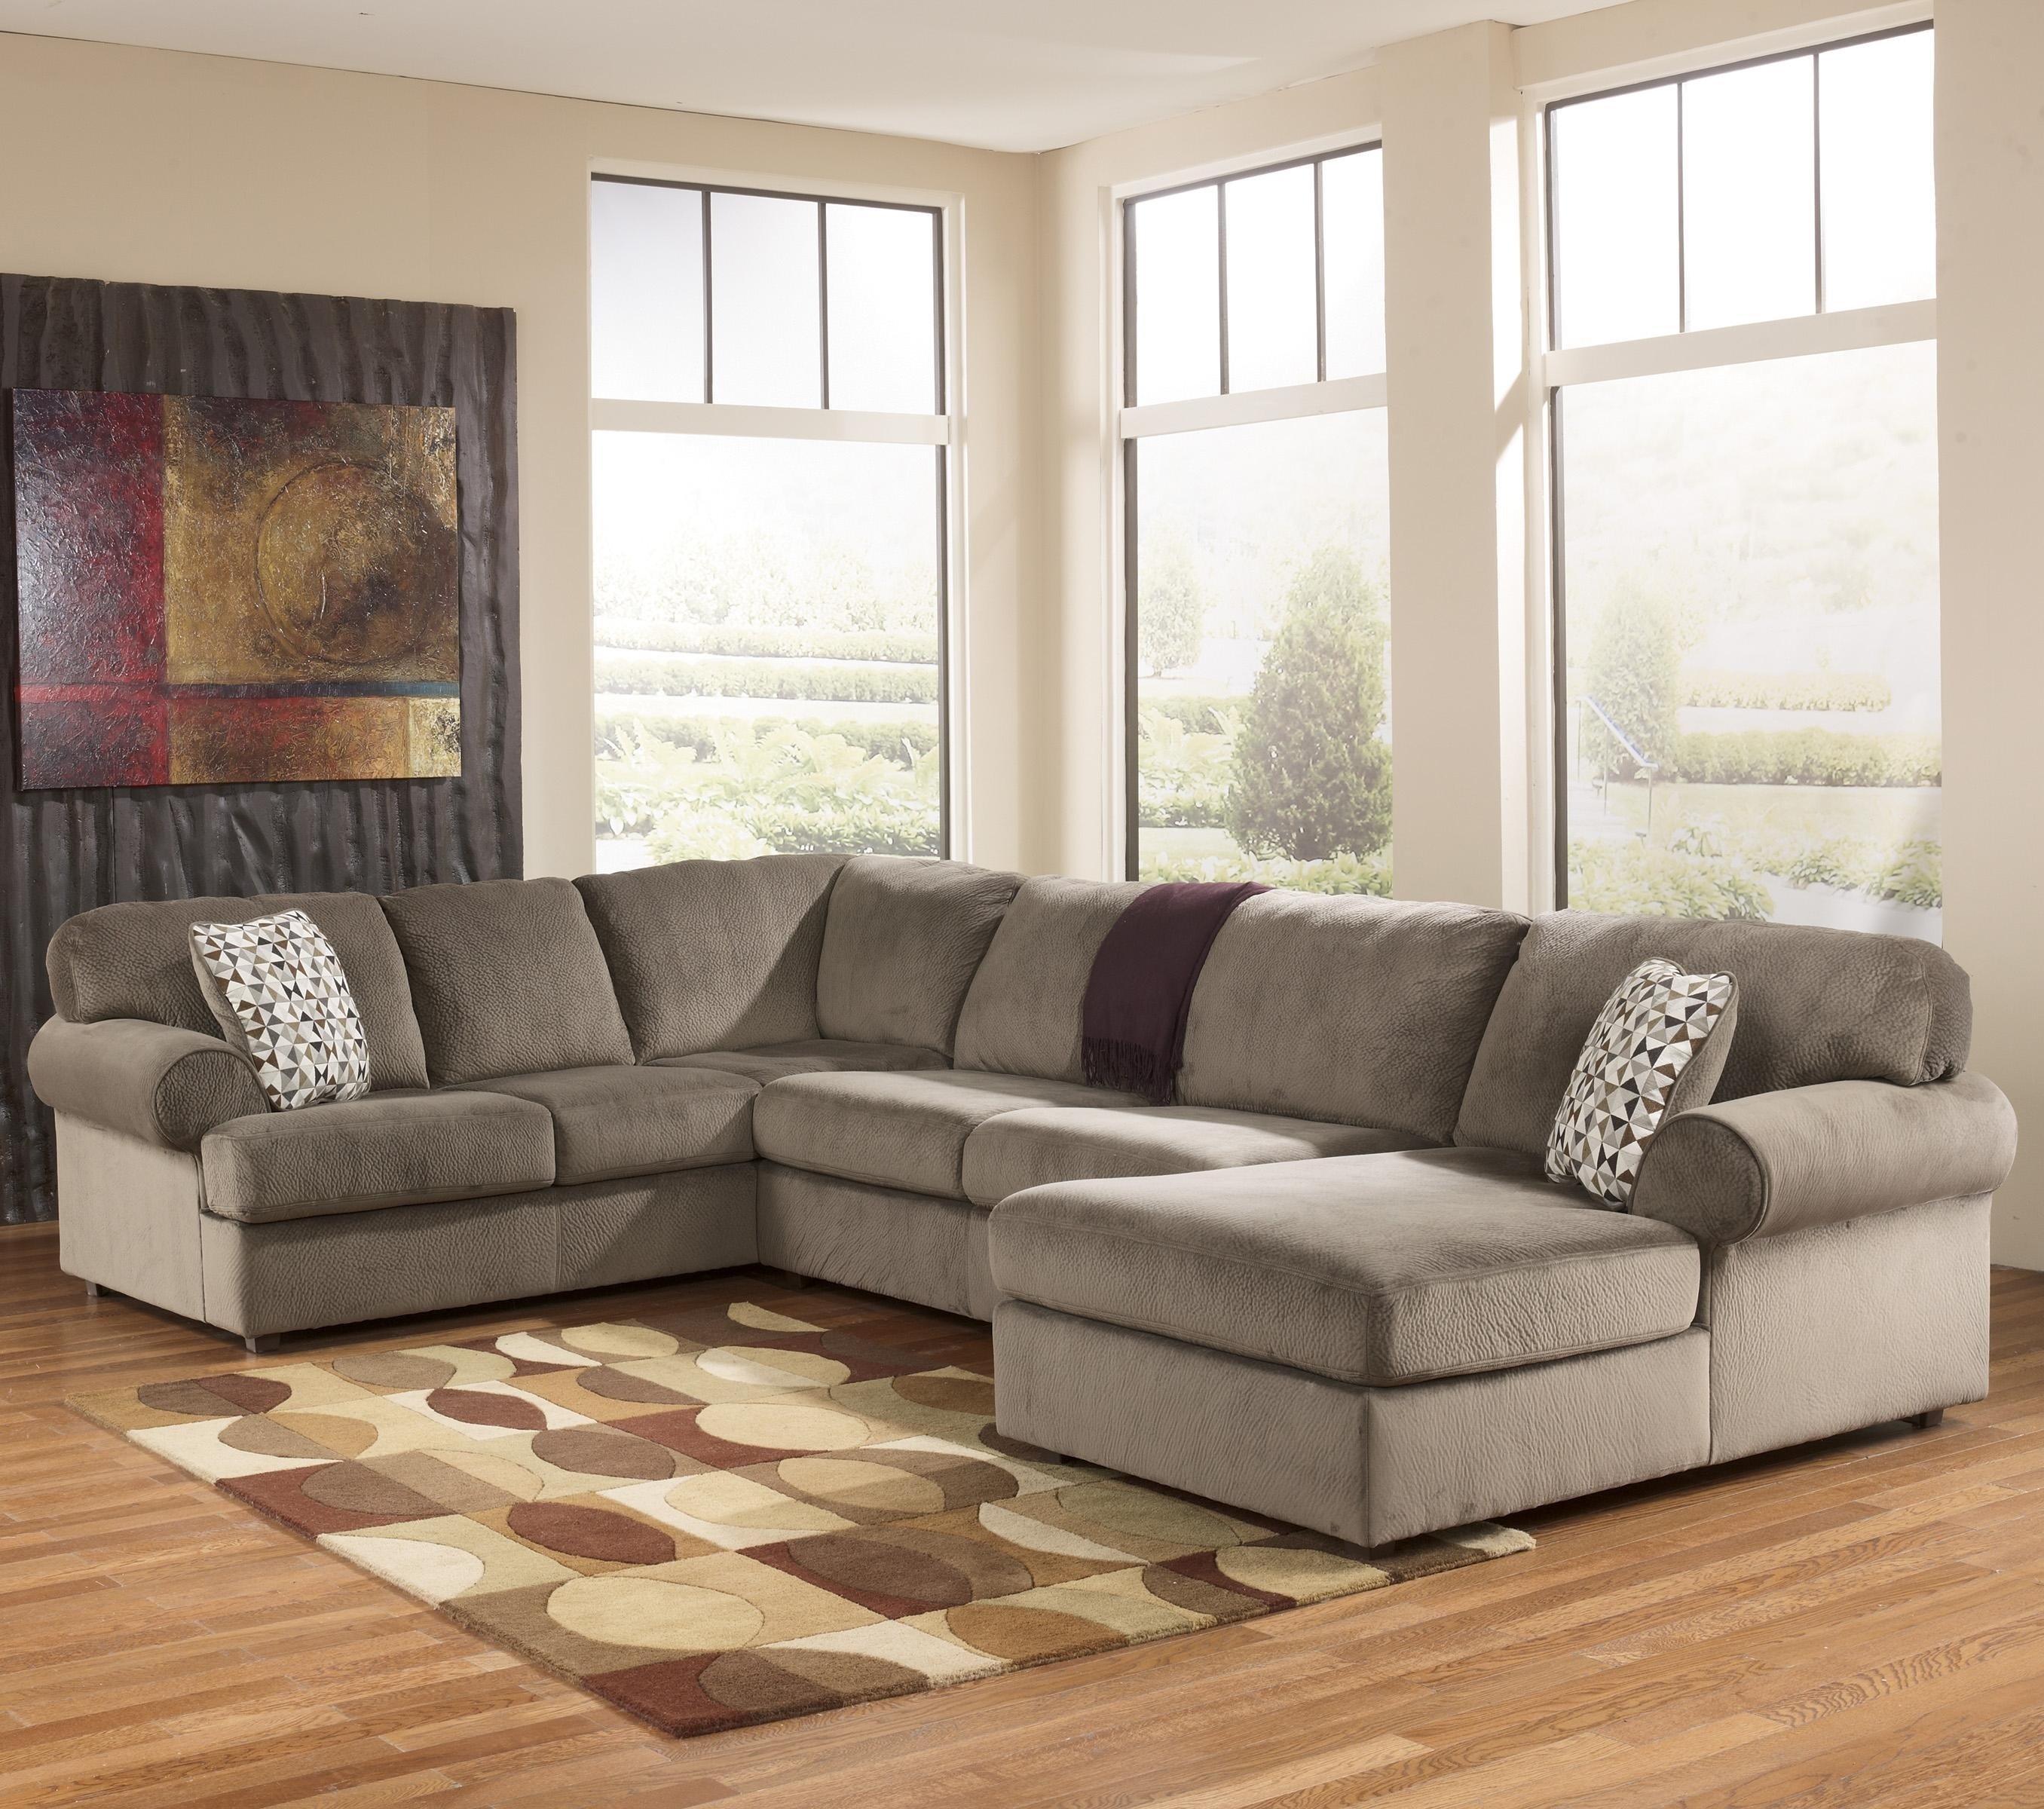 Signature Designashley Jessa Place - Dune Casual Sectional Sofa pertaining to Norfolk Chocolate 3 Piece Sectionals With Raf Chaise (Image 26 of 30)